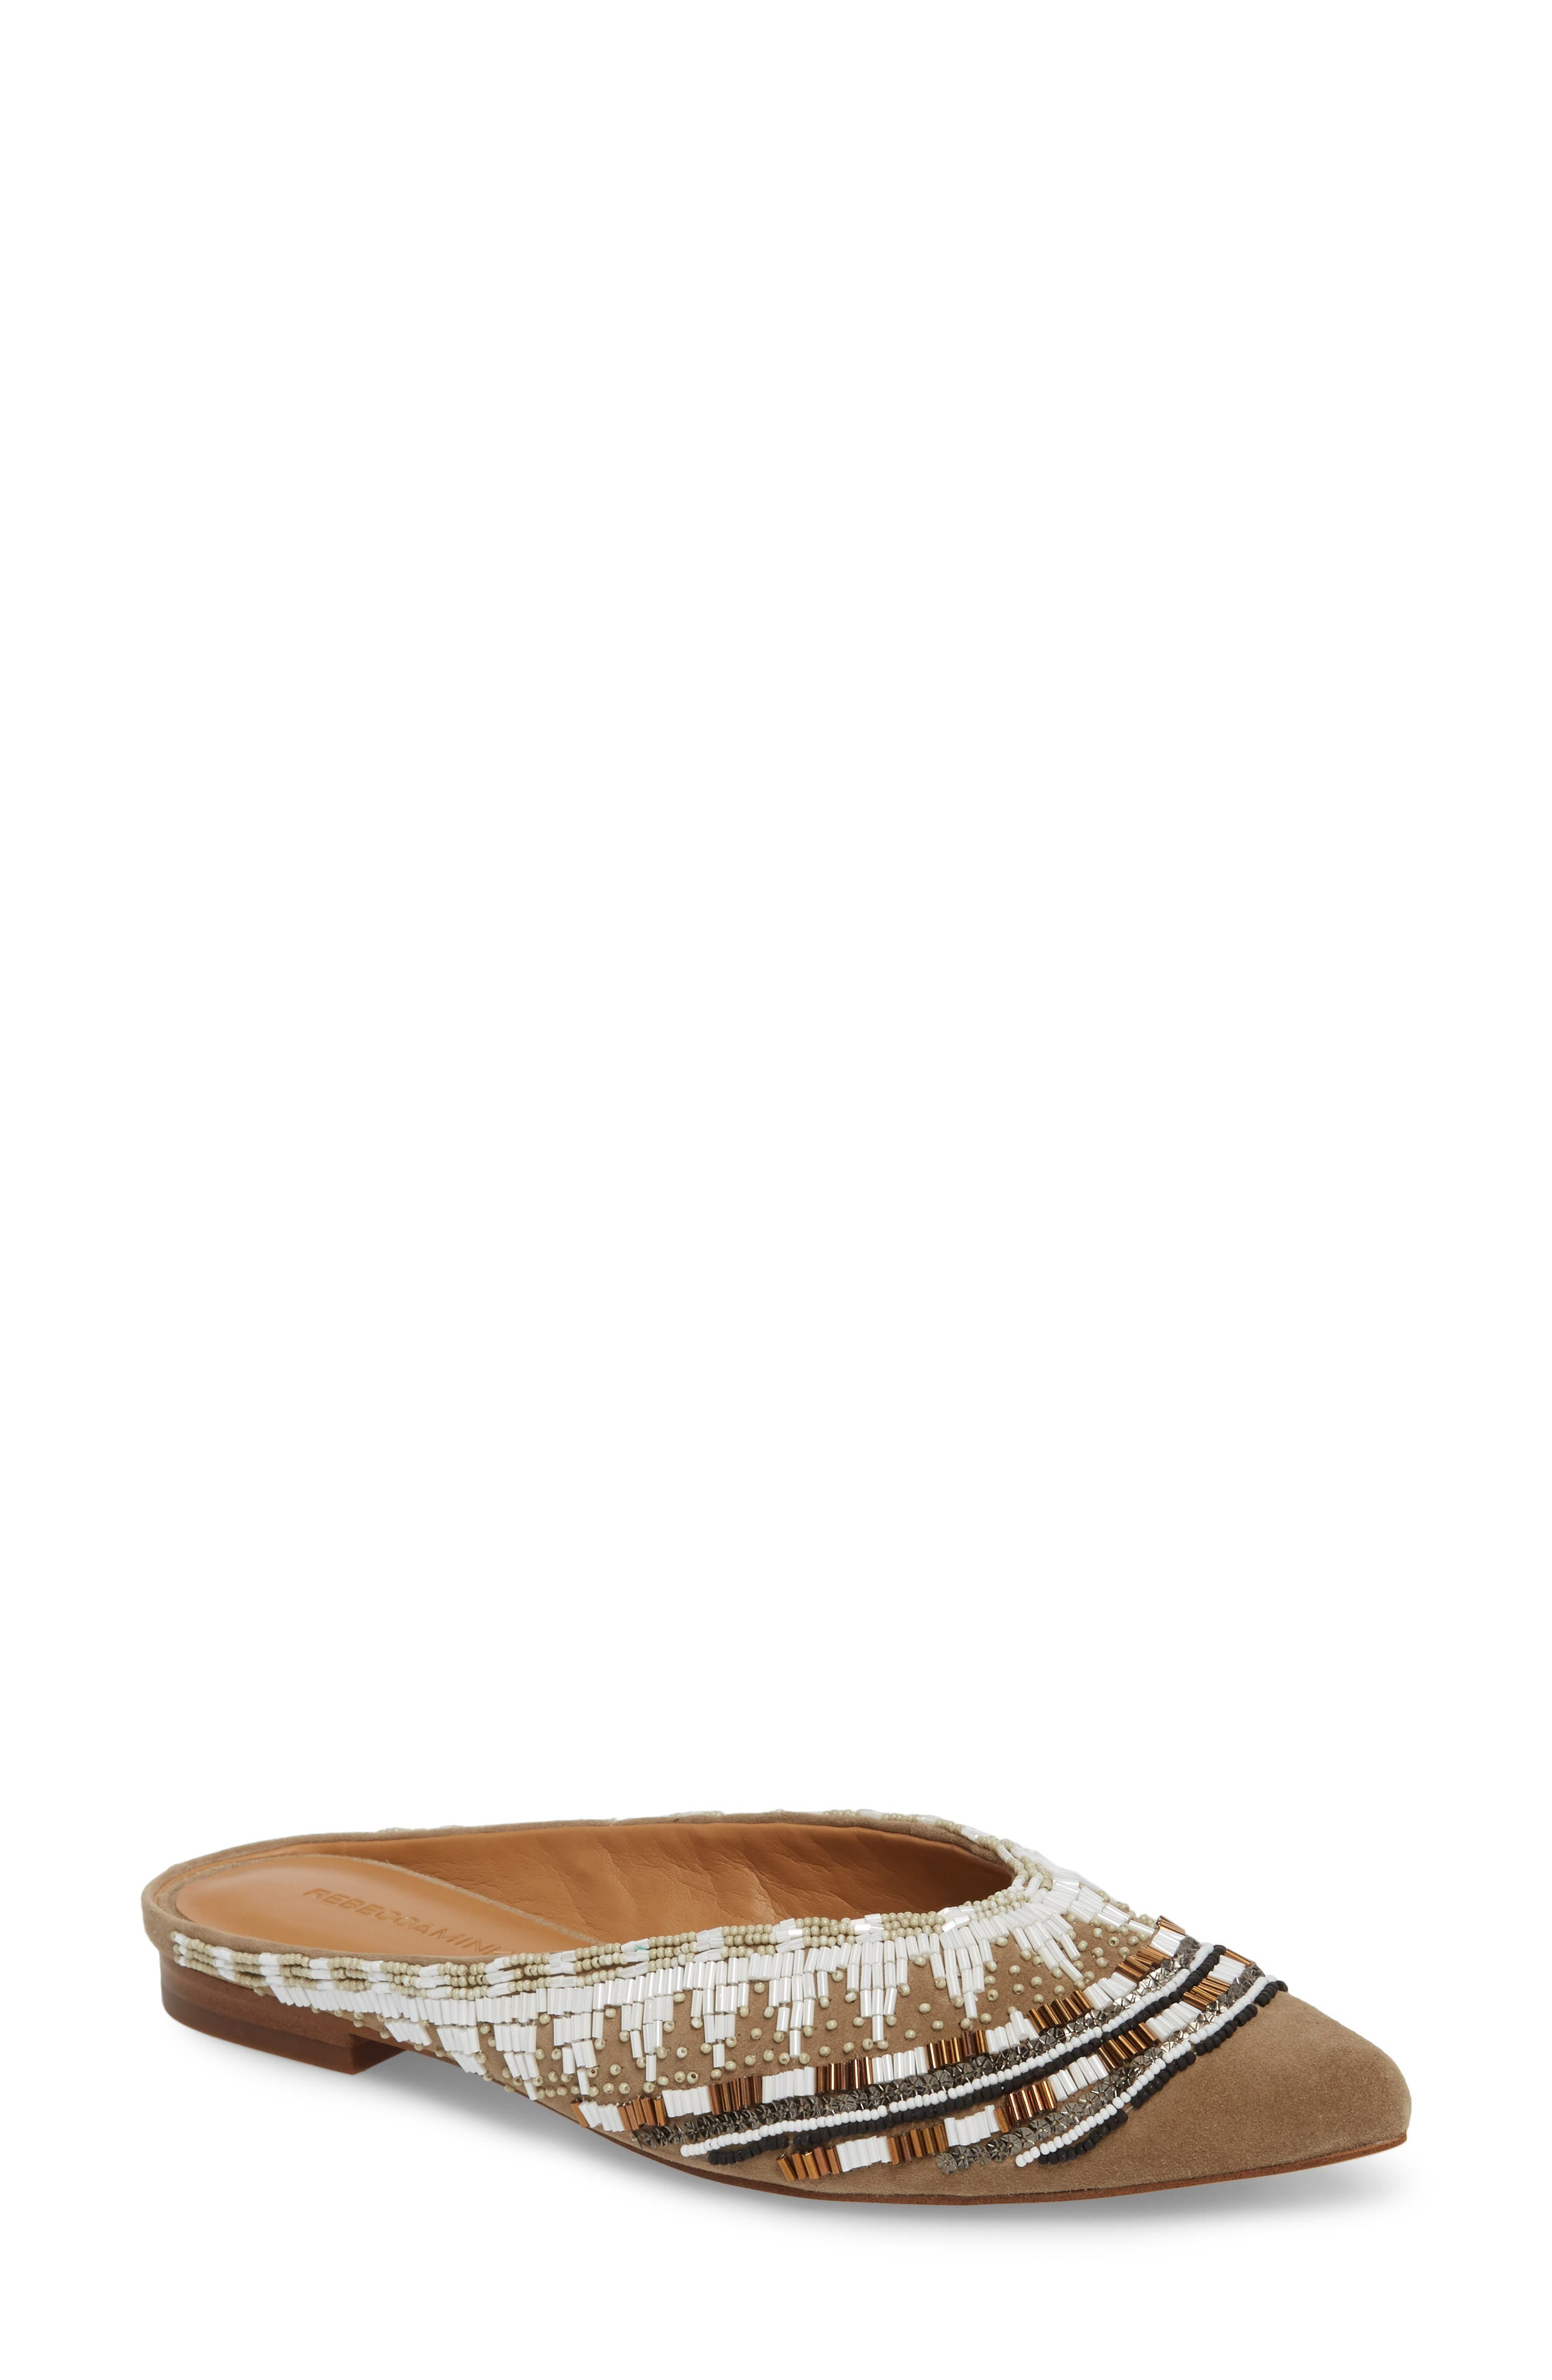 Roxane Beaded Flat Mule,                         Main,                         color, TAUPE SUEDE